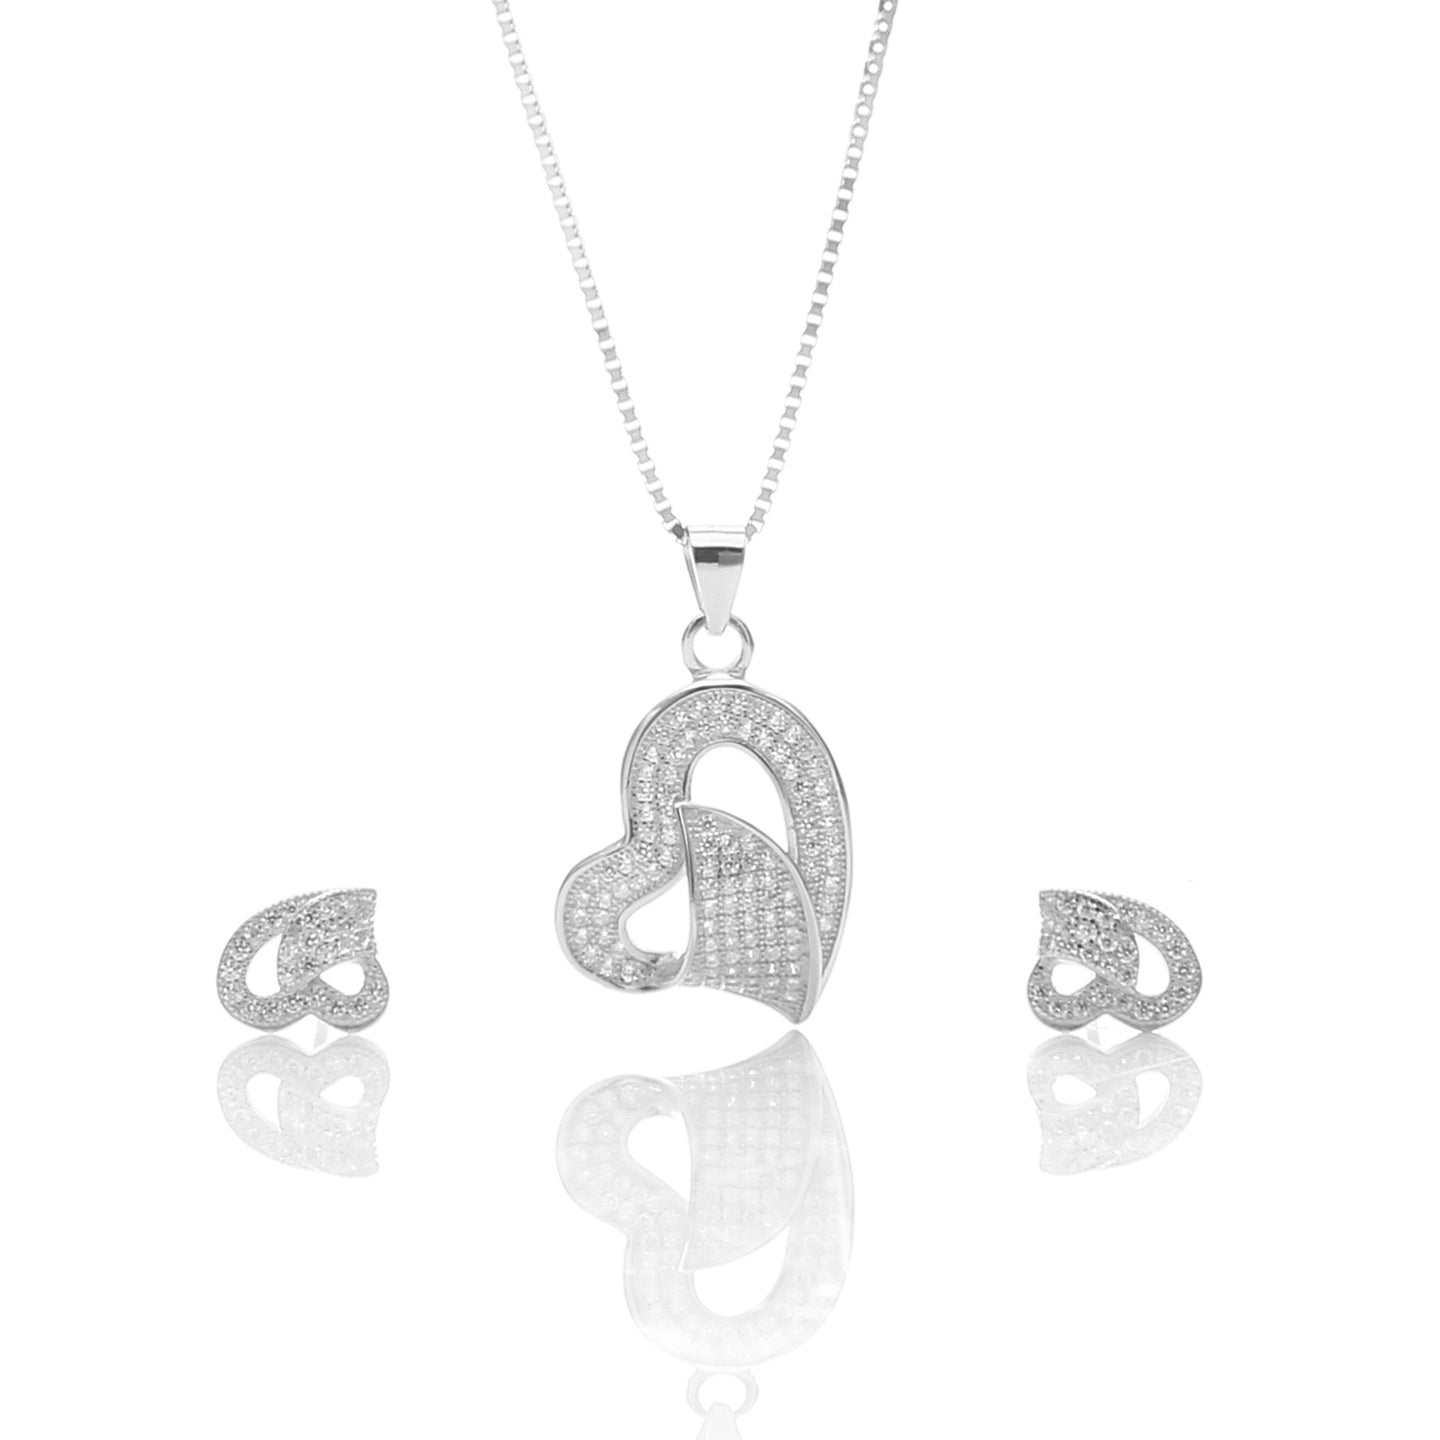 Classic One Sided Bent Heart Shaped Pendant Necklace and Earrings Set - ARJW1014RD - ARCADIO LIFESTYLE